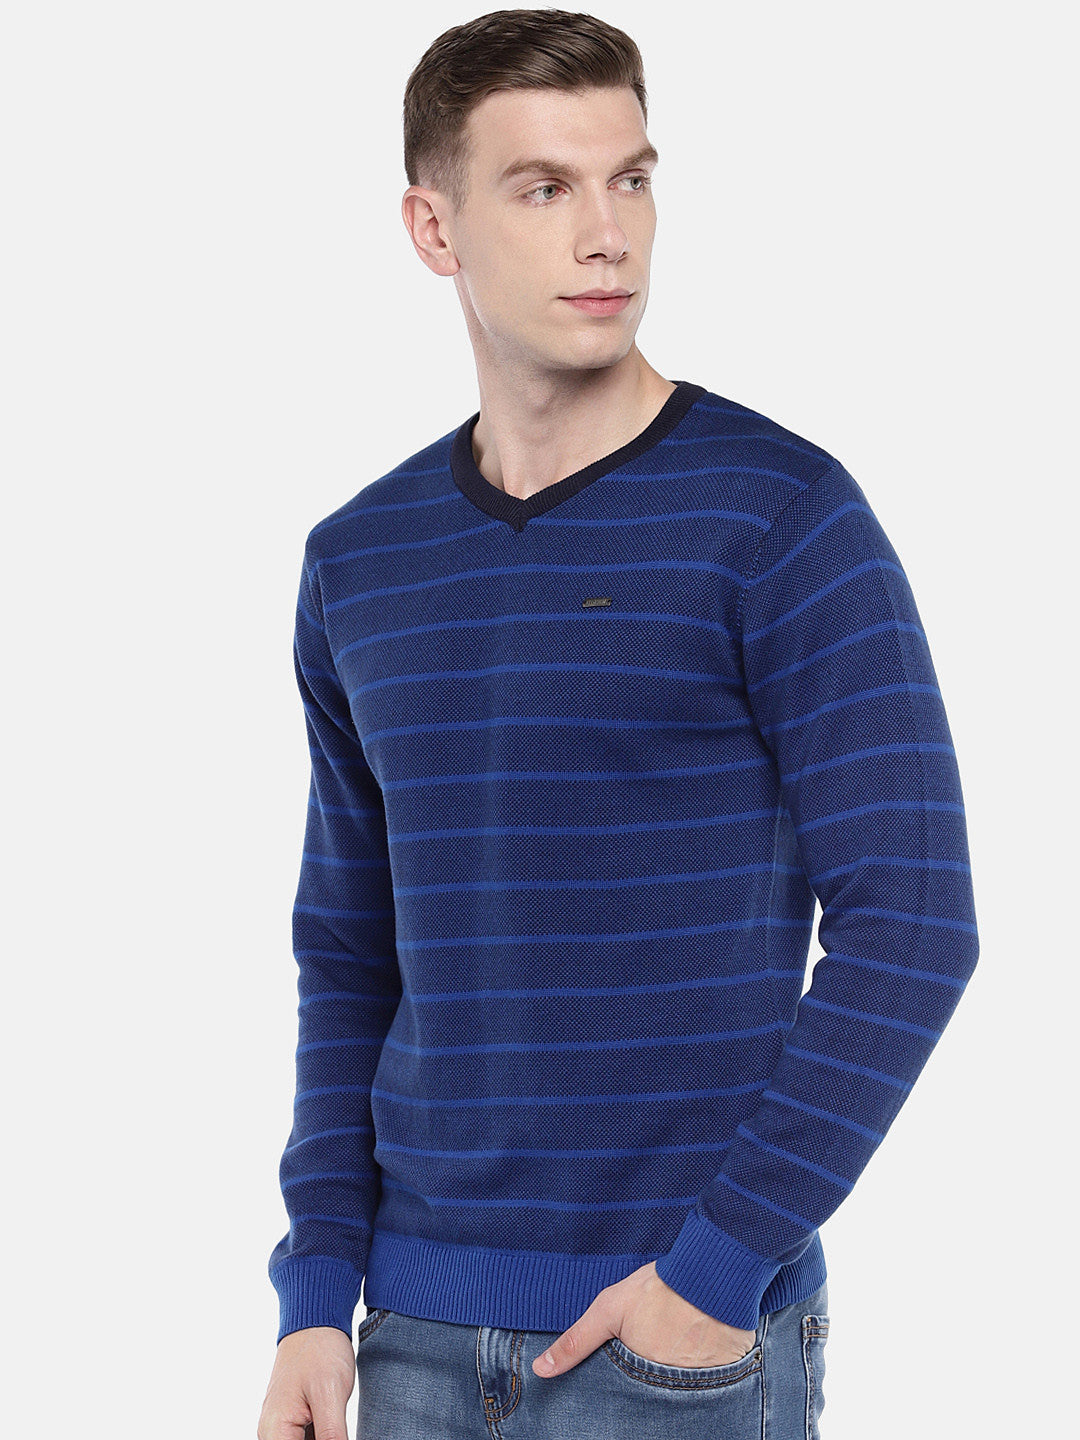 Blue Striped Pullover Sweater-2